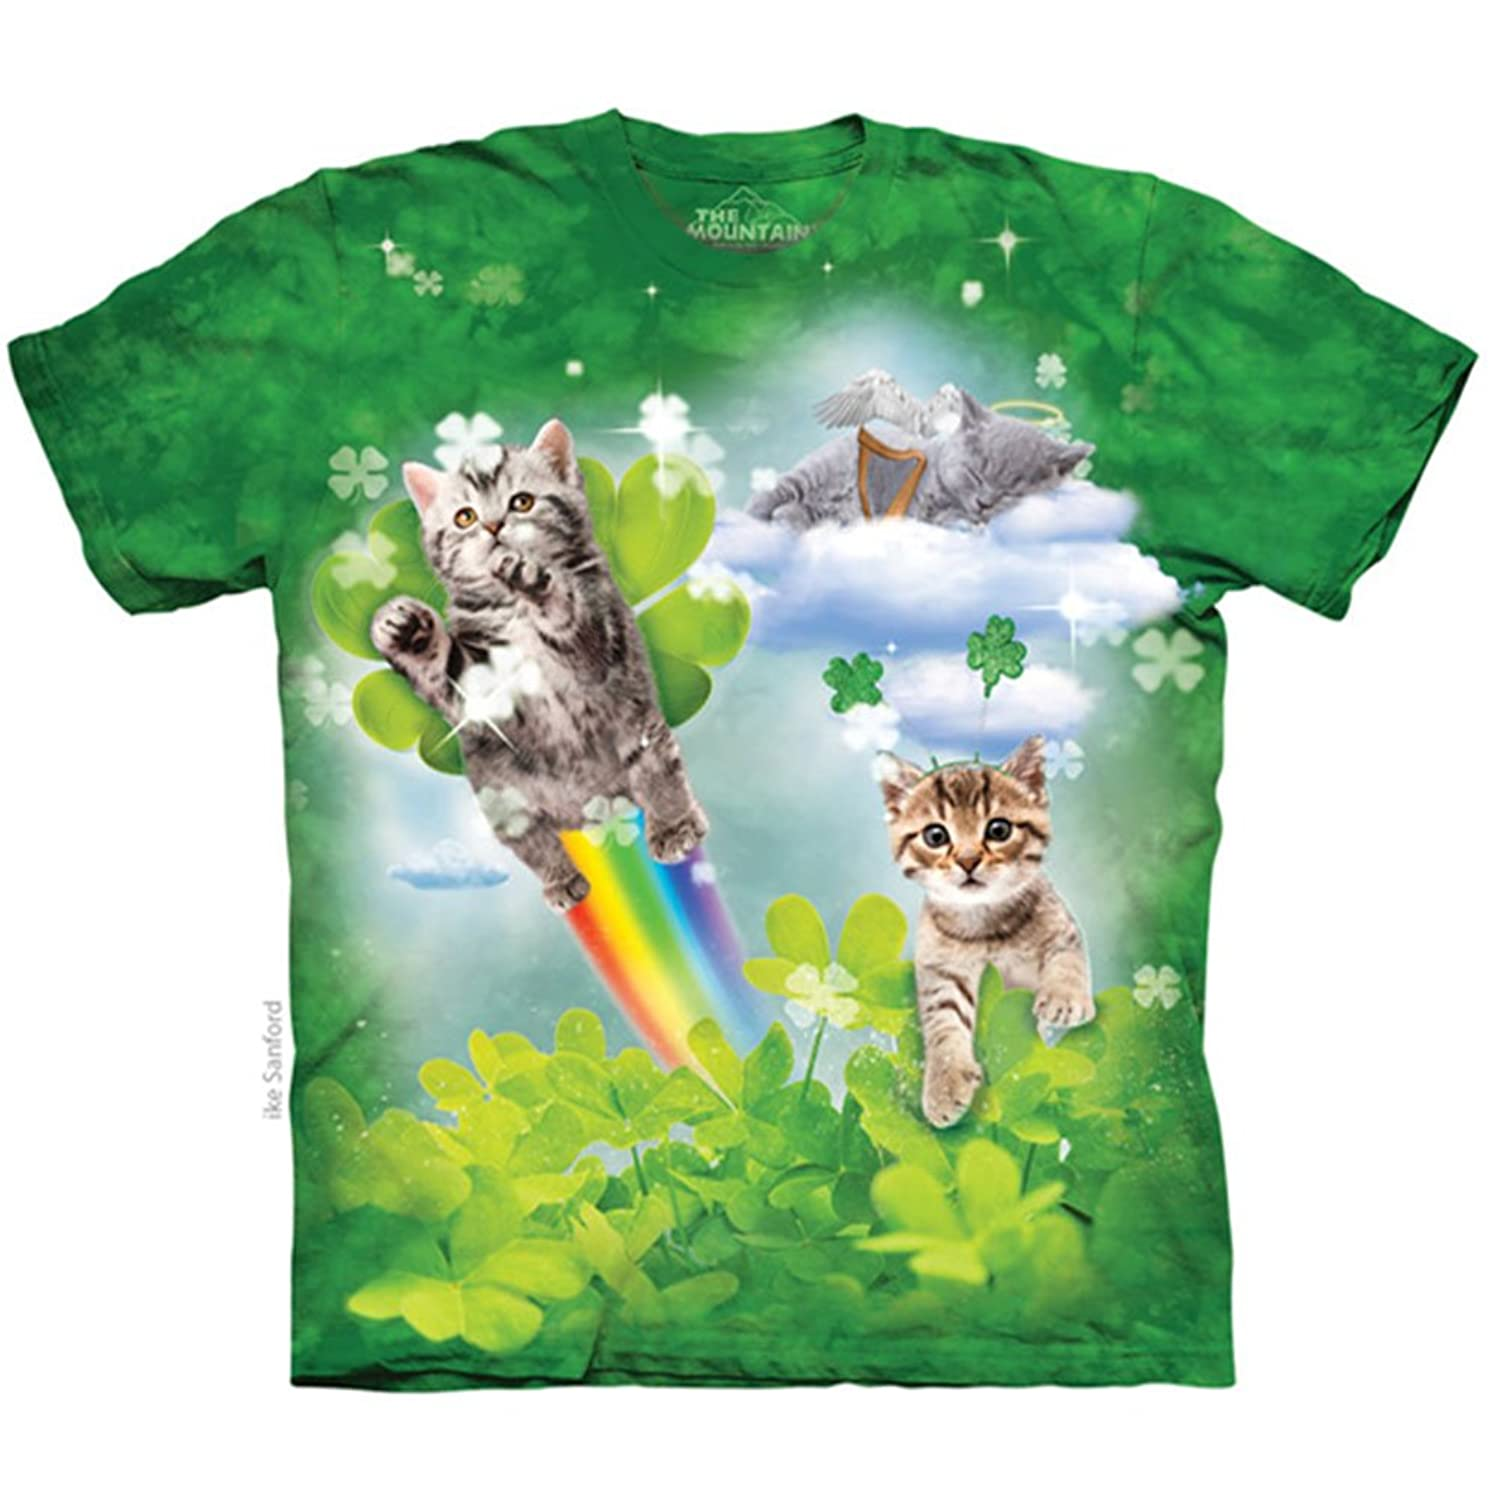 The Mountain Cotton Green Irish Fairy Kitten Novelty Adult T-Shirt (Green)